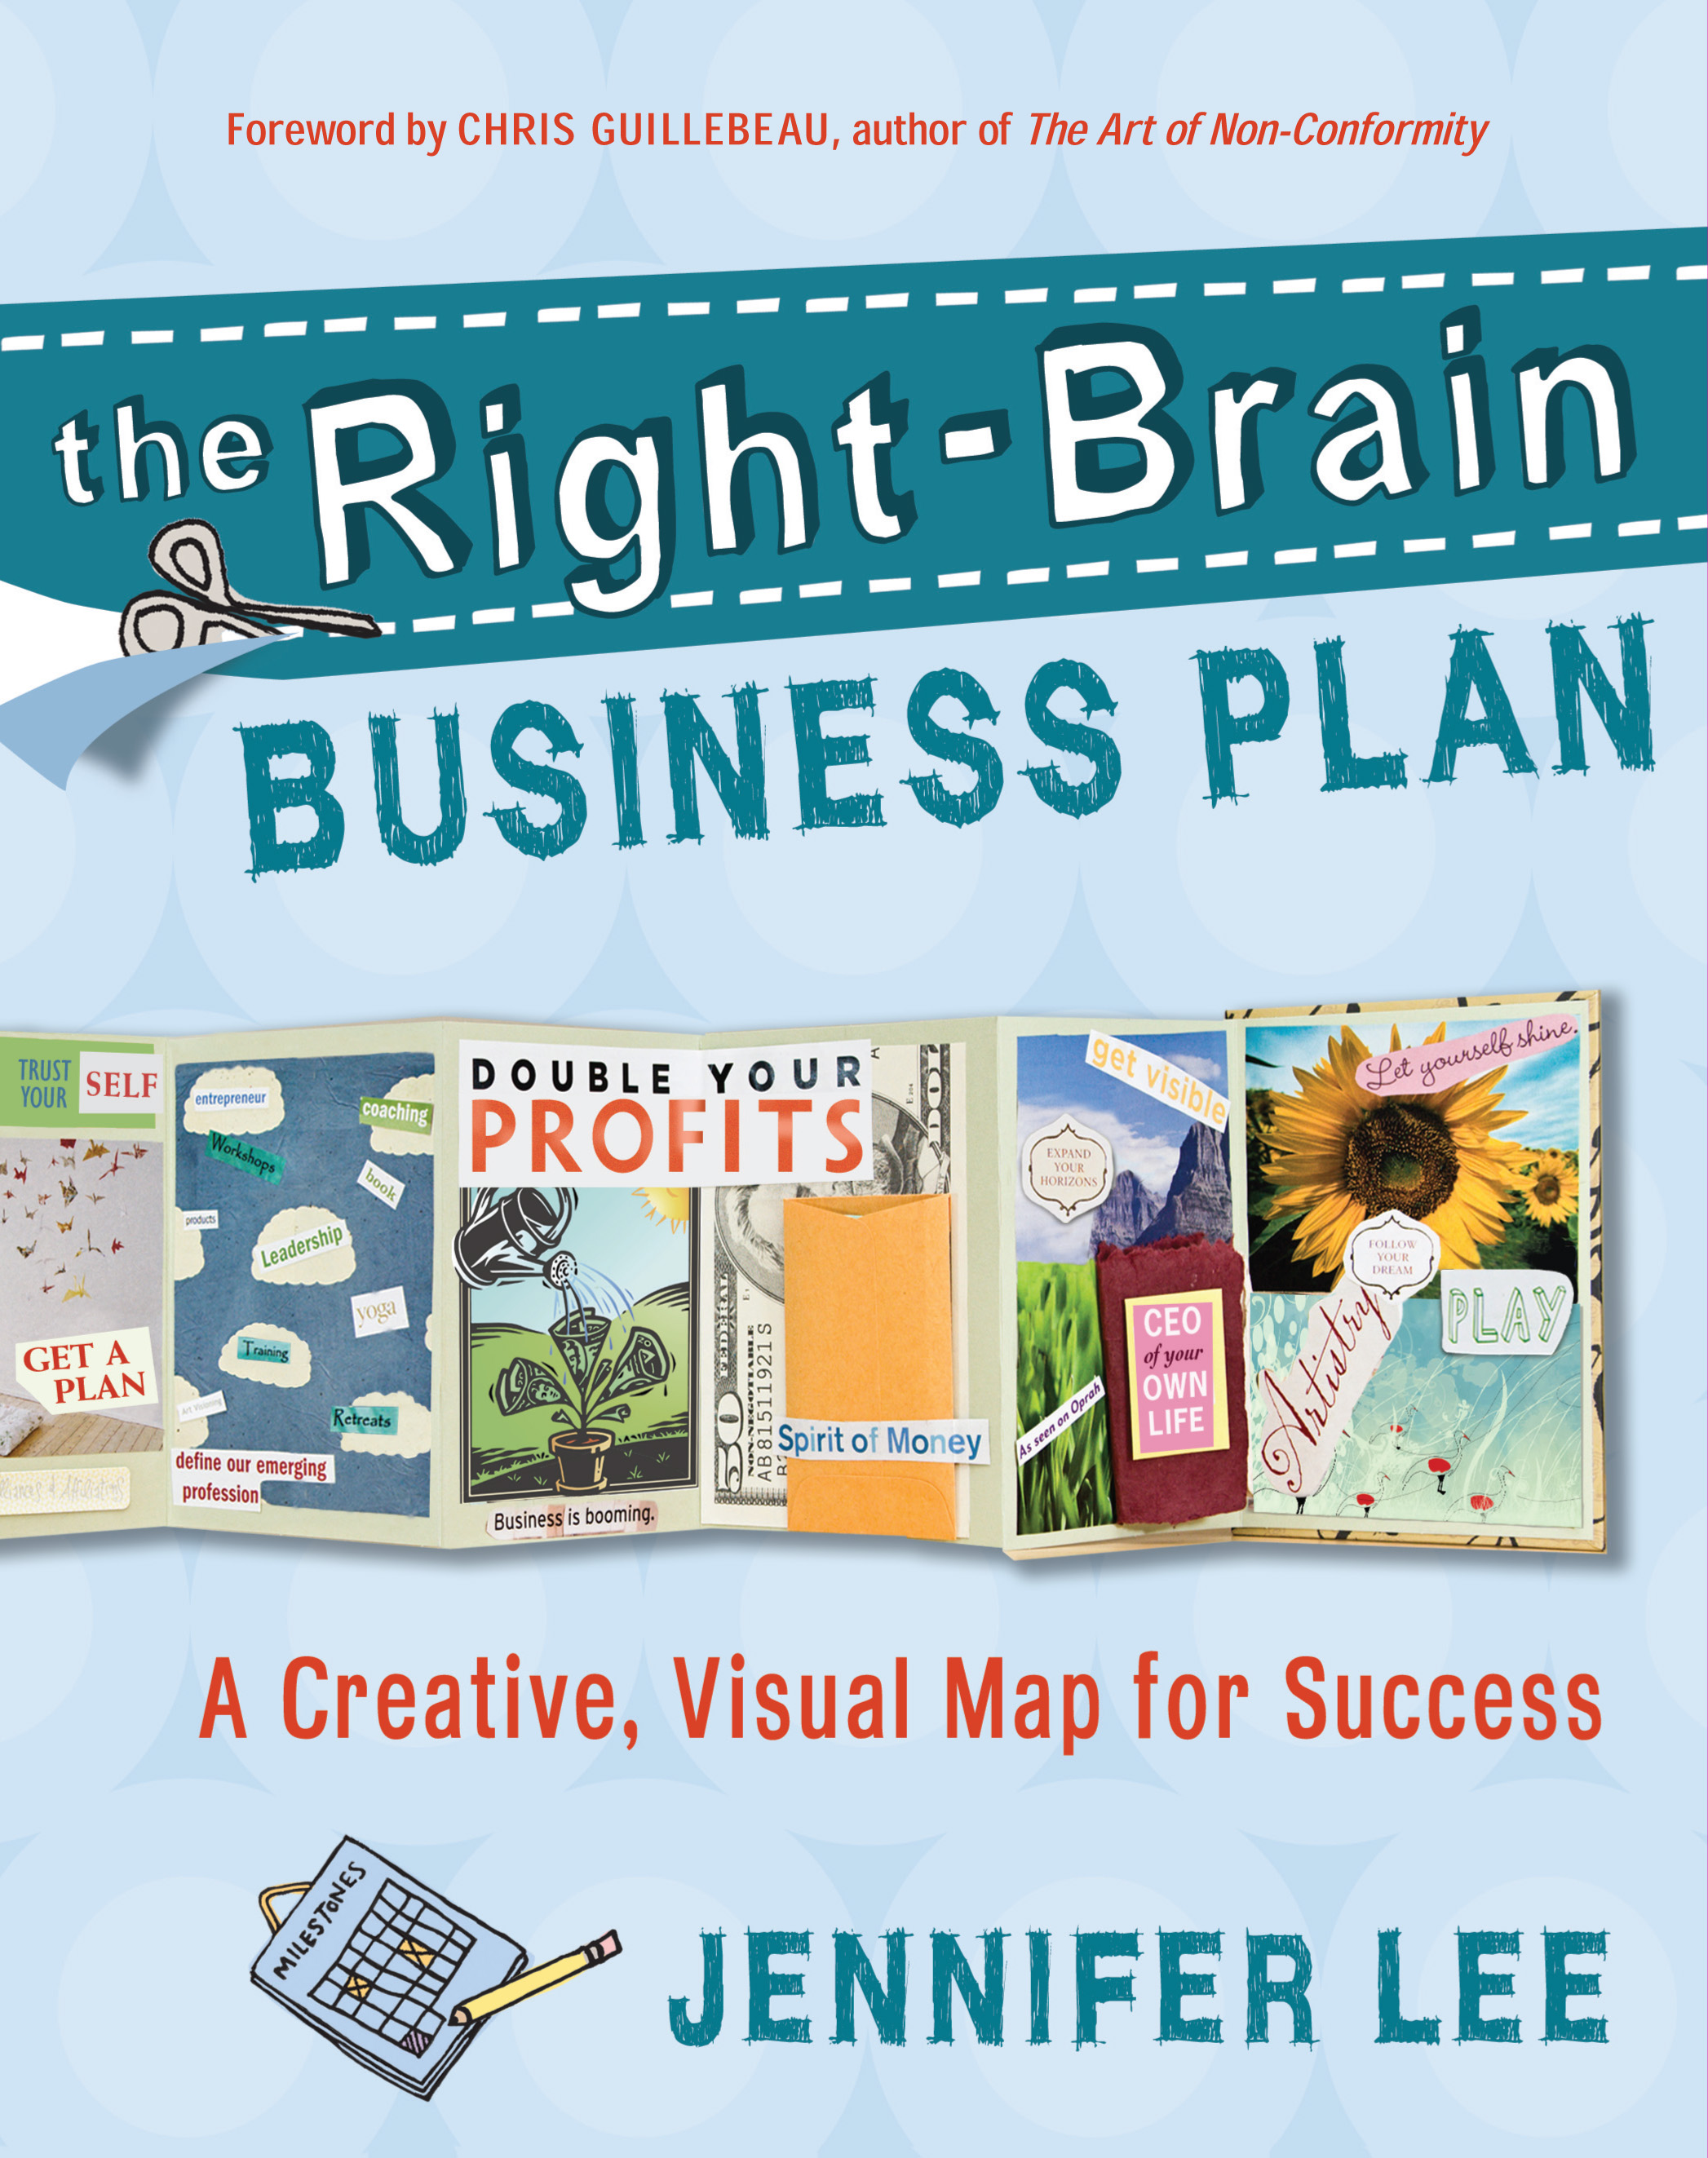 The Right Brain Business Plan Book